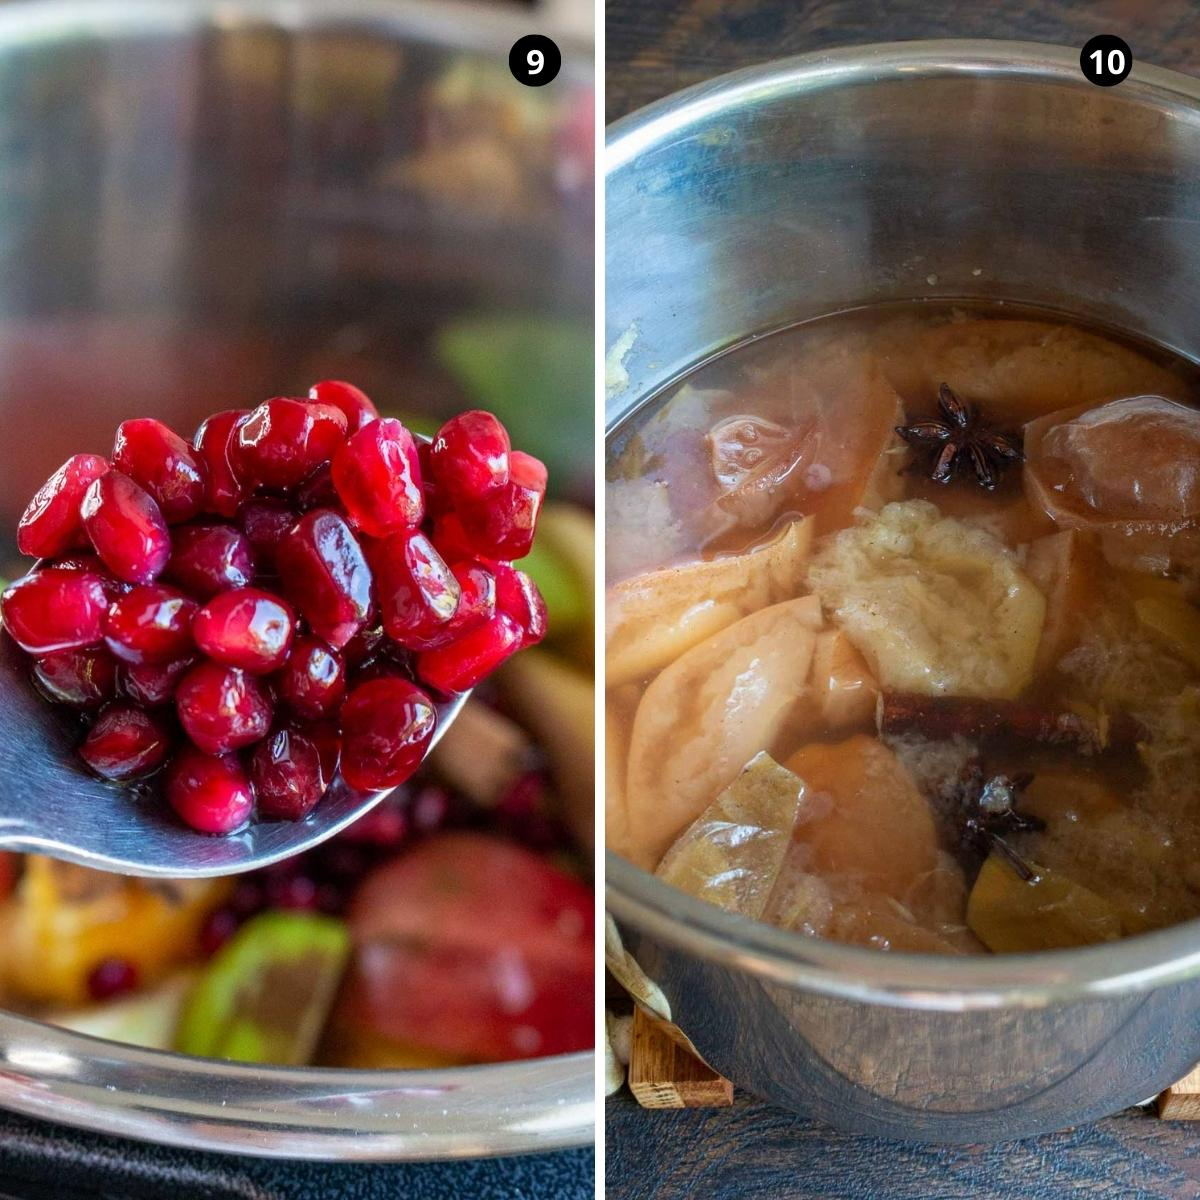 Pomegranates added and cooked apple cider.